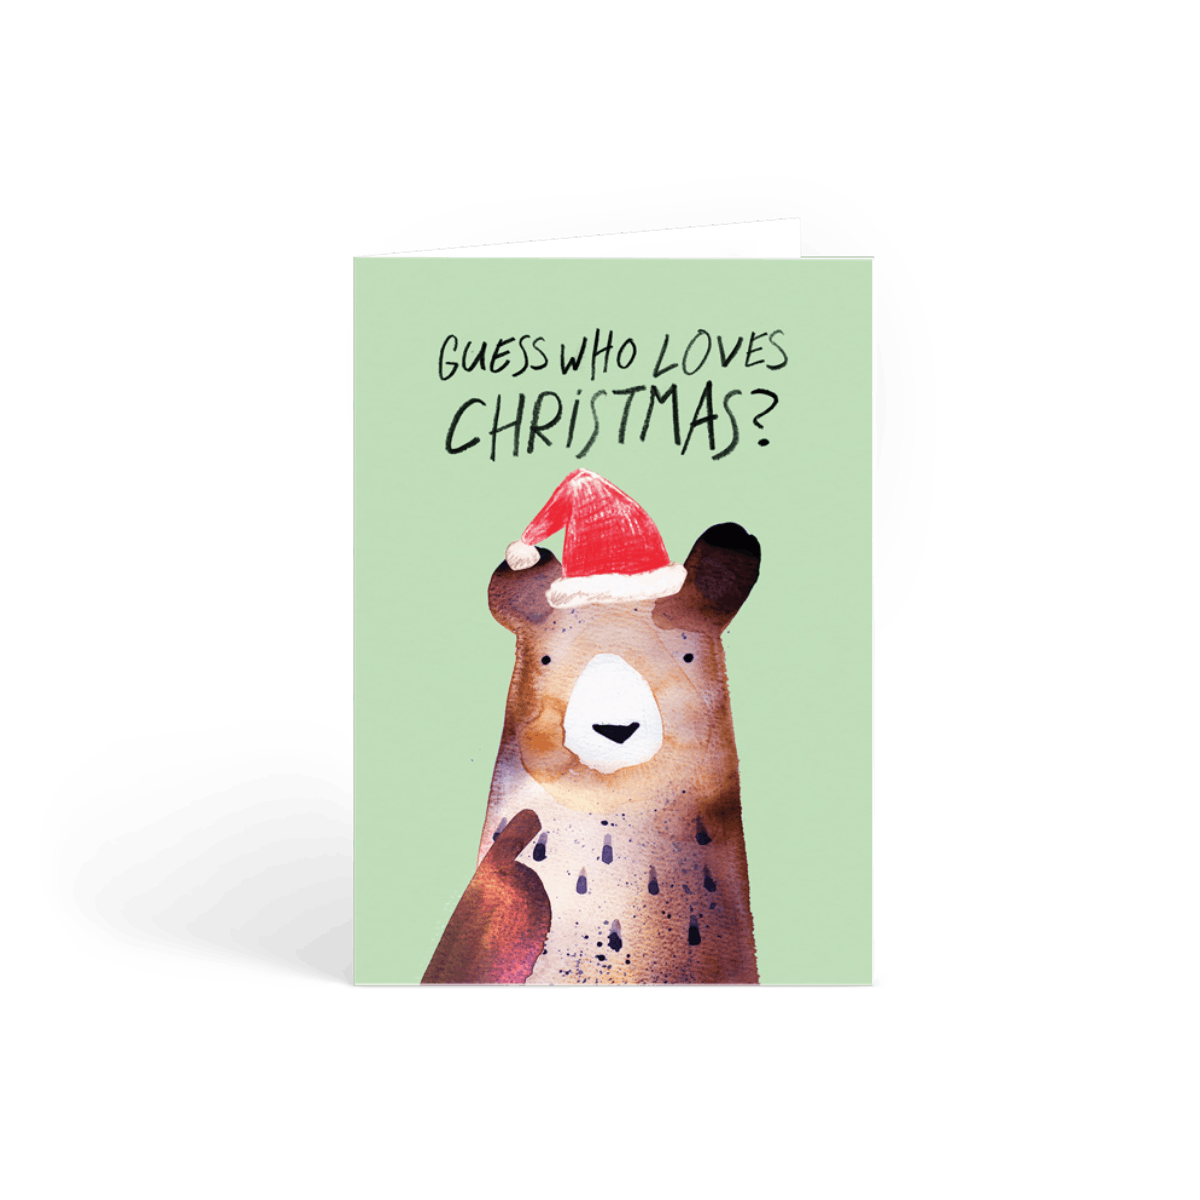 Https%3a%2f%2fwww.papier.com%2fproduct image%2f24019%2f2%2fwho loves christmas 6009 front 1570650158.png?ixlib=rb 1.1